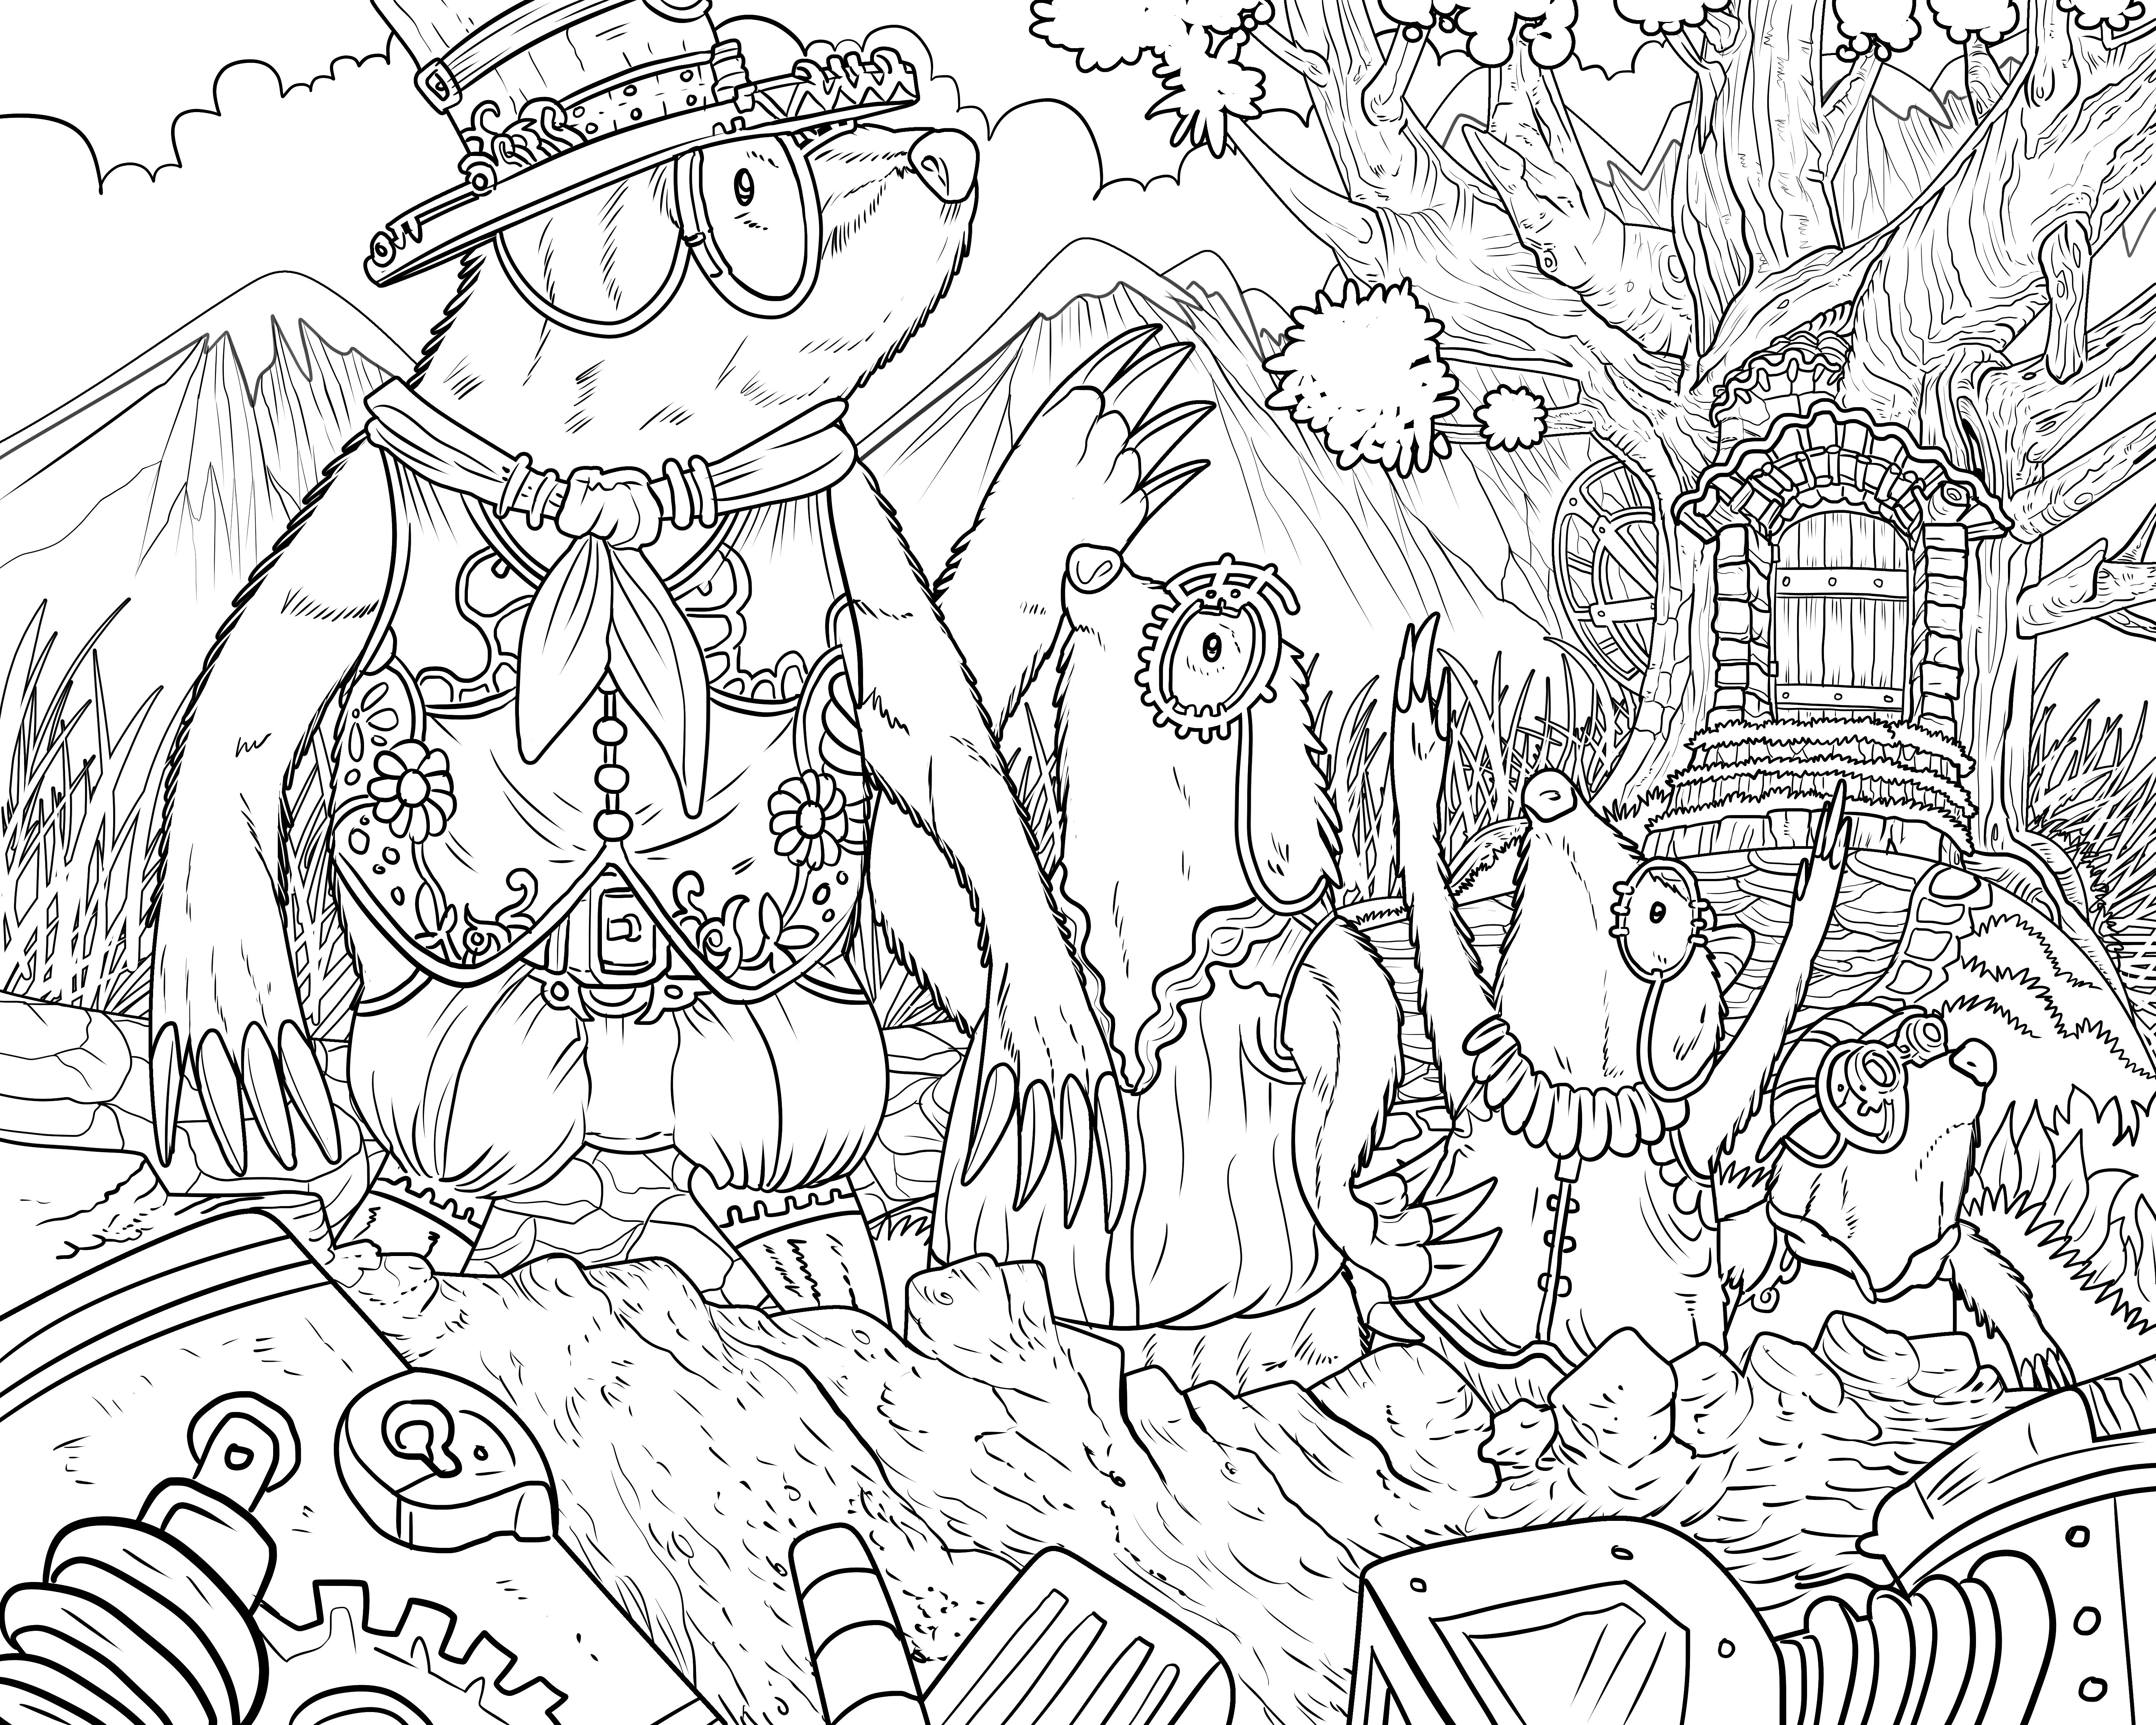 Mythological Creatures Coloring Pages - Steampunk Life – Adult Coloring Books Nathaniel Wake Publishing